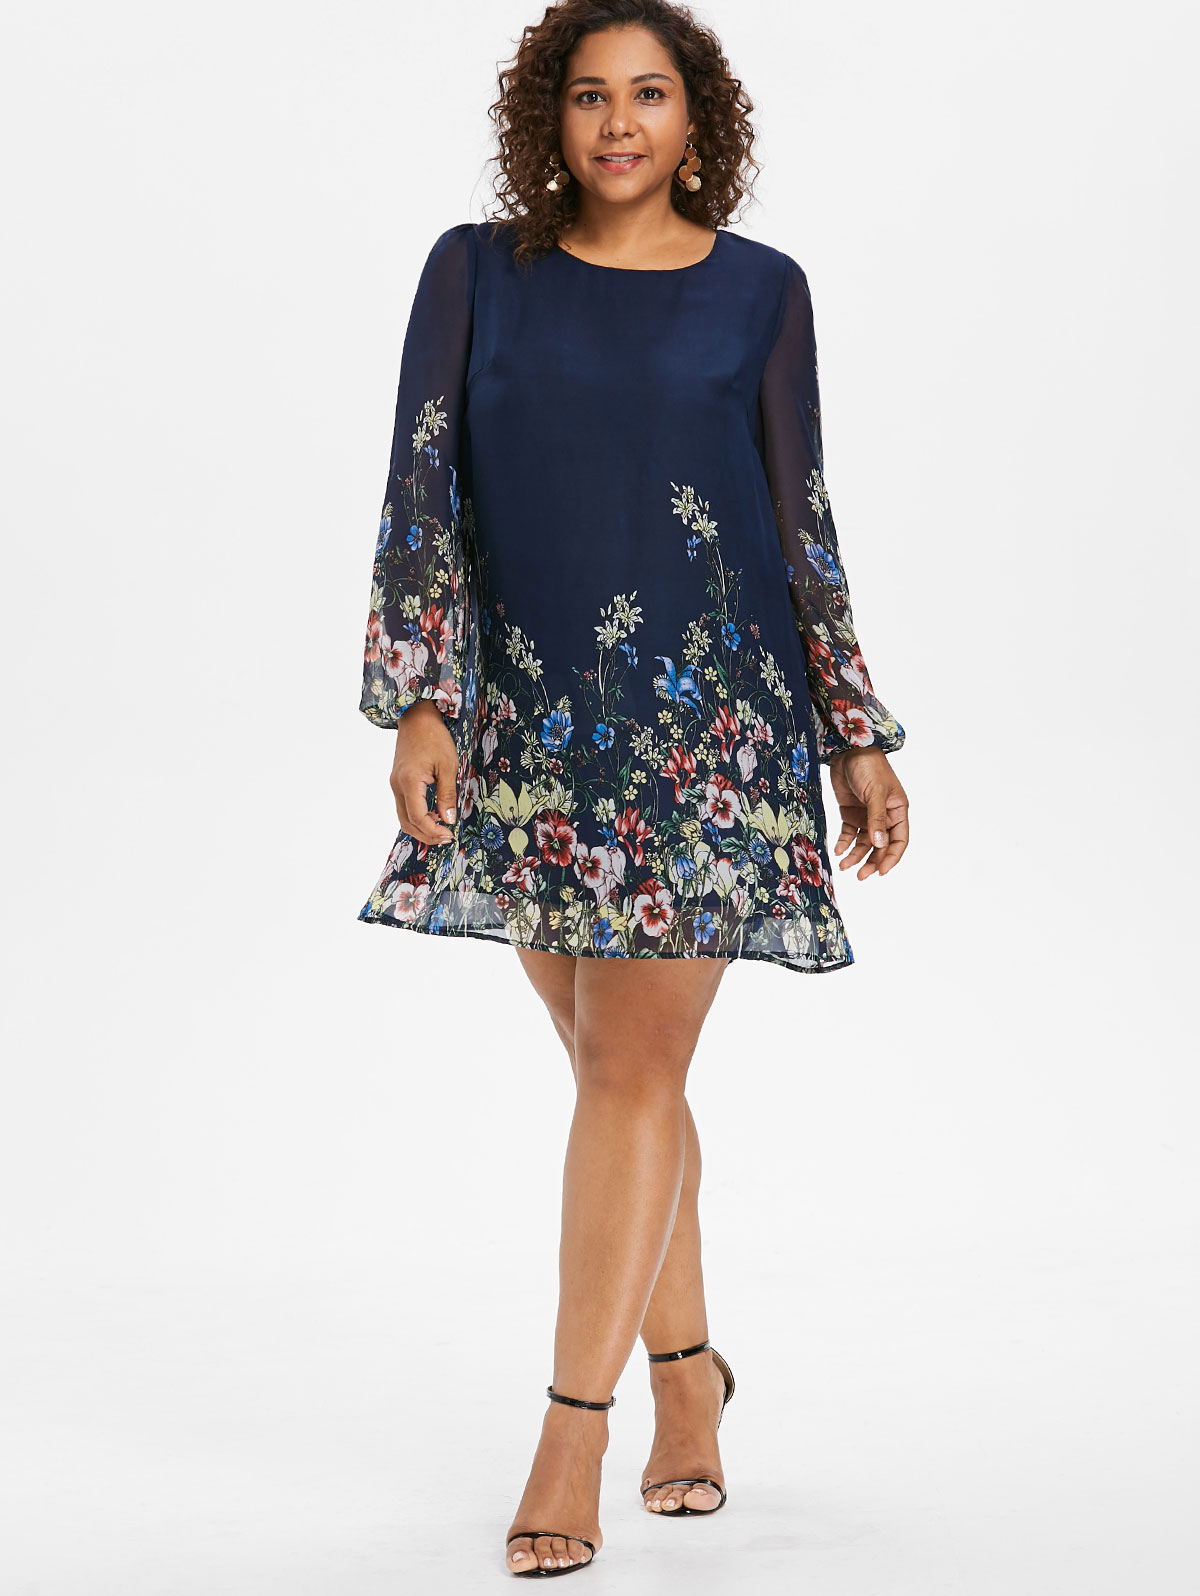 SUMMER SHORT SLEEVE FLORAL MULTICOLORED MINI DRESS//TUNIC LONG TOP PLUS SIZE 721